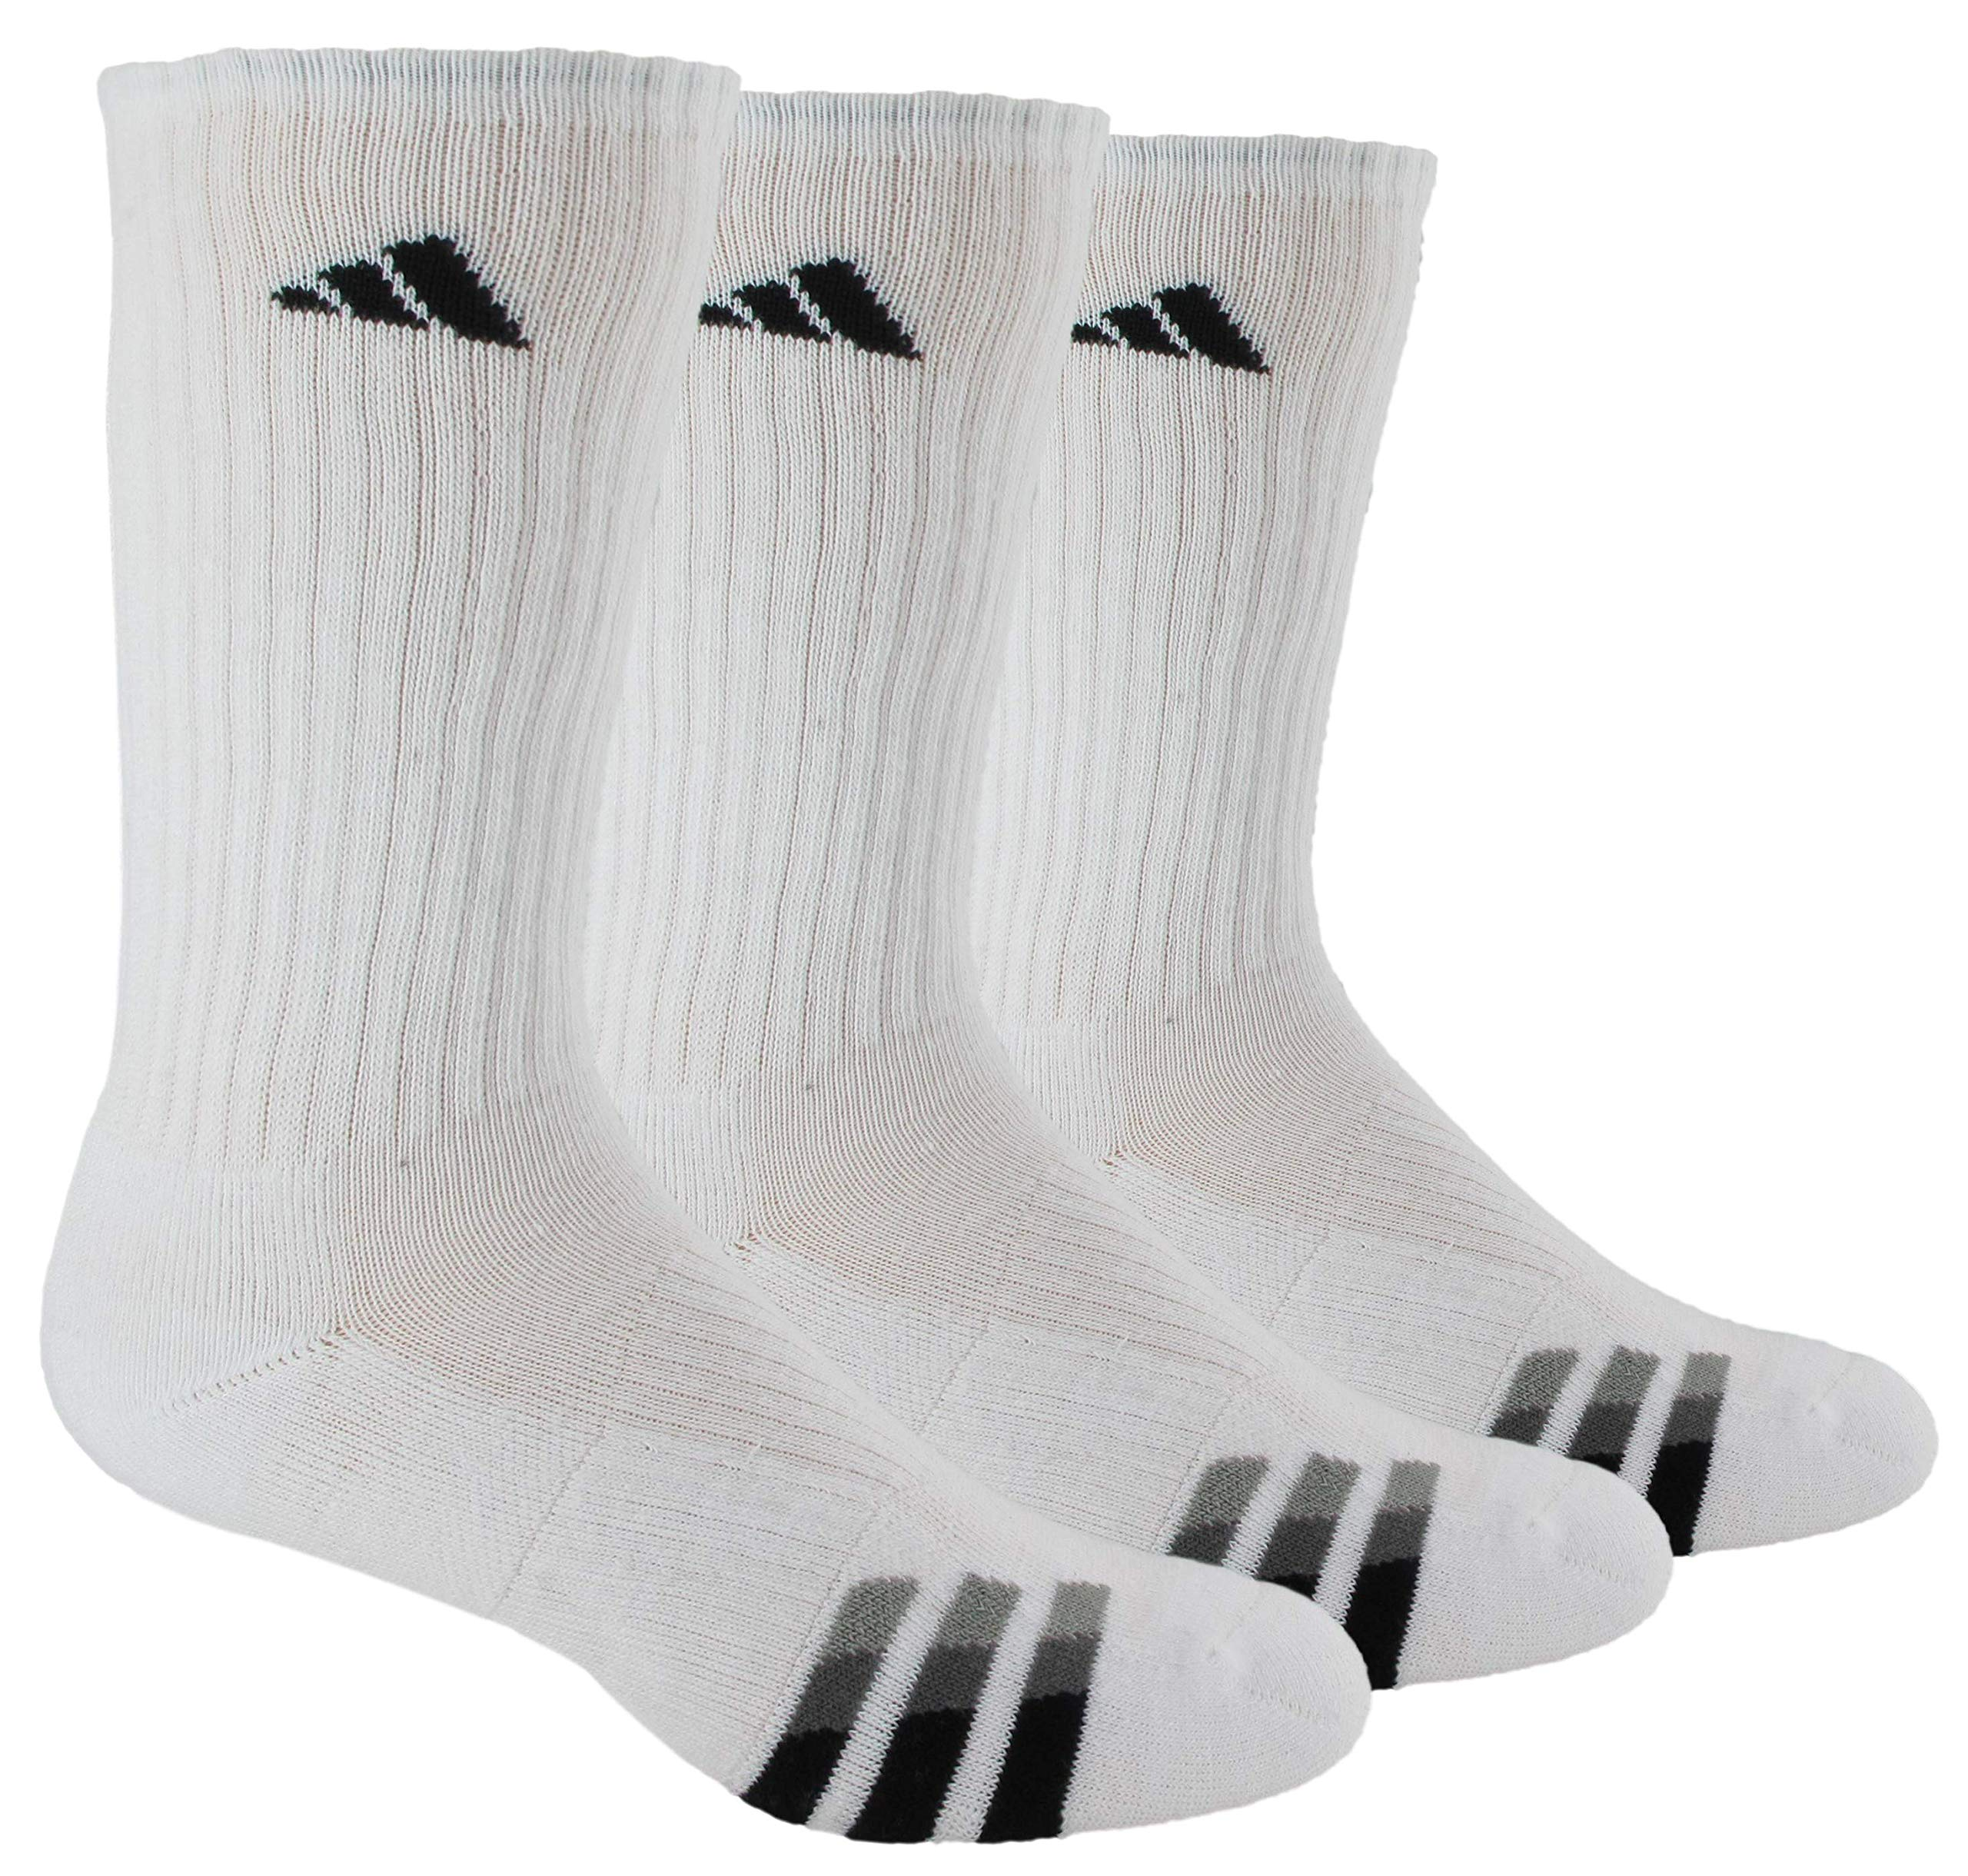 adidas Men's Cushioned Crew Socks (3-Pair), White/Black/Granite/Light Onix, Large, (Shoe Size 6-12) by adidas